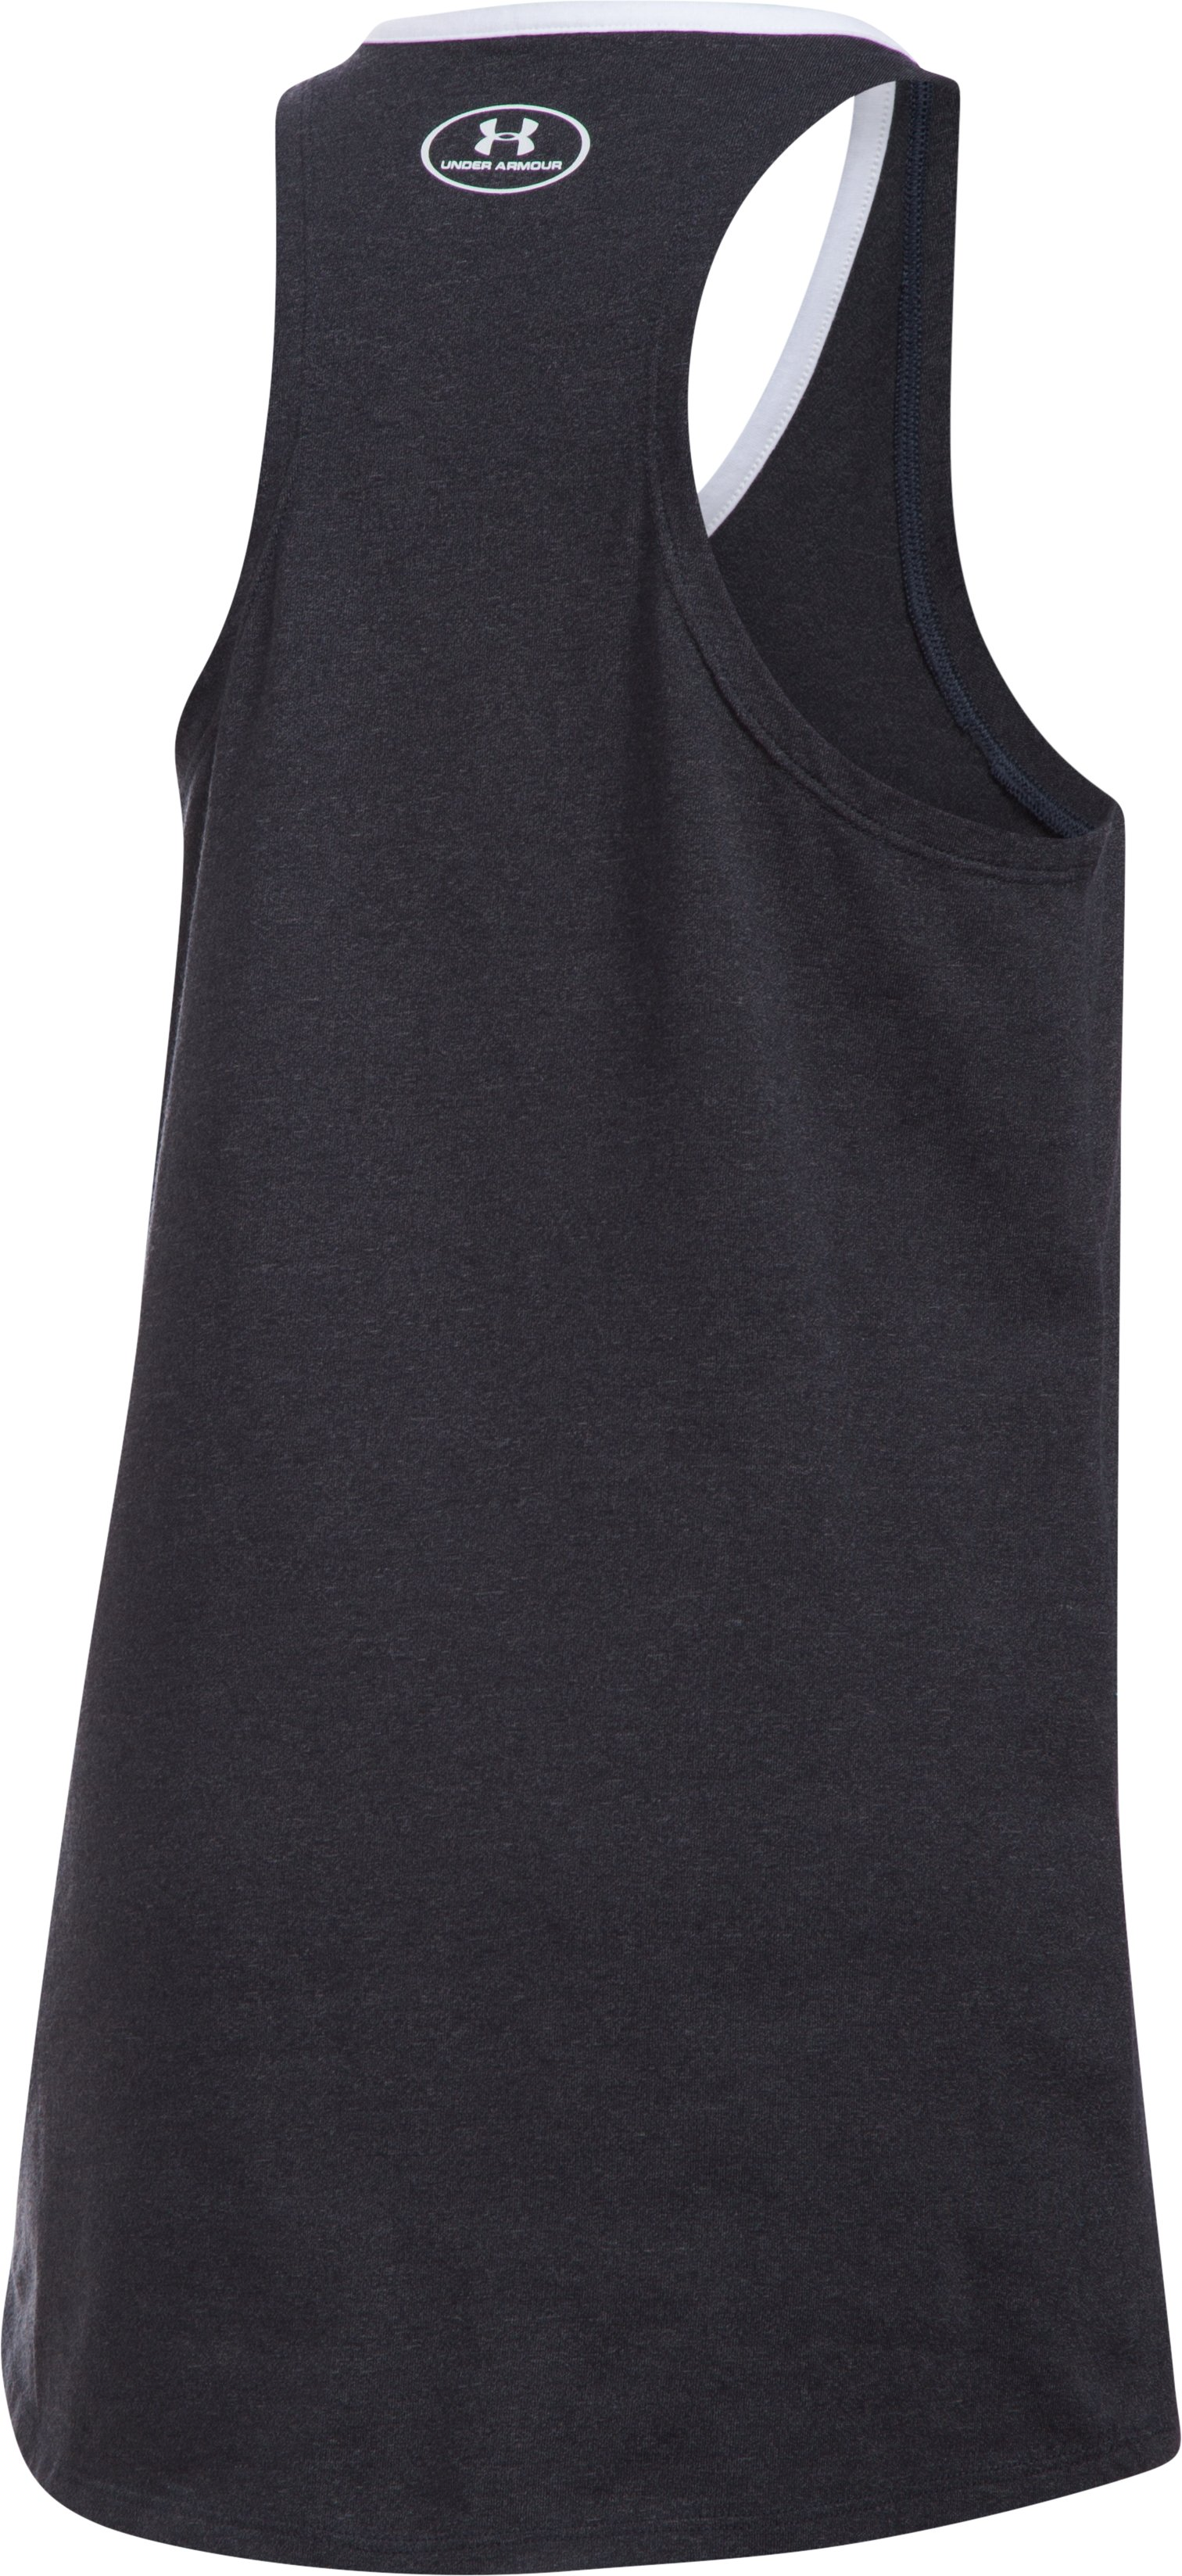 Girls' Arizona Diamondbacks Ringer Tank, Black , undefined